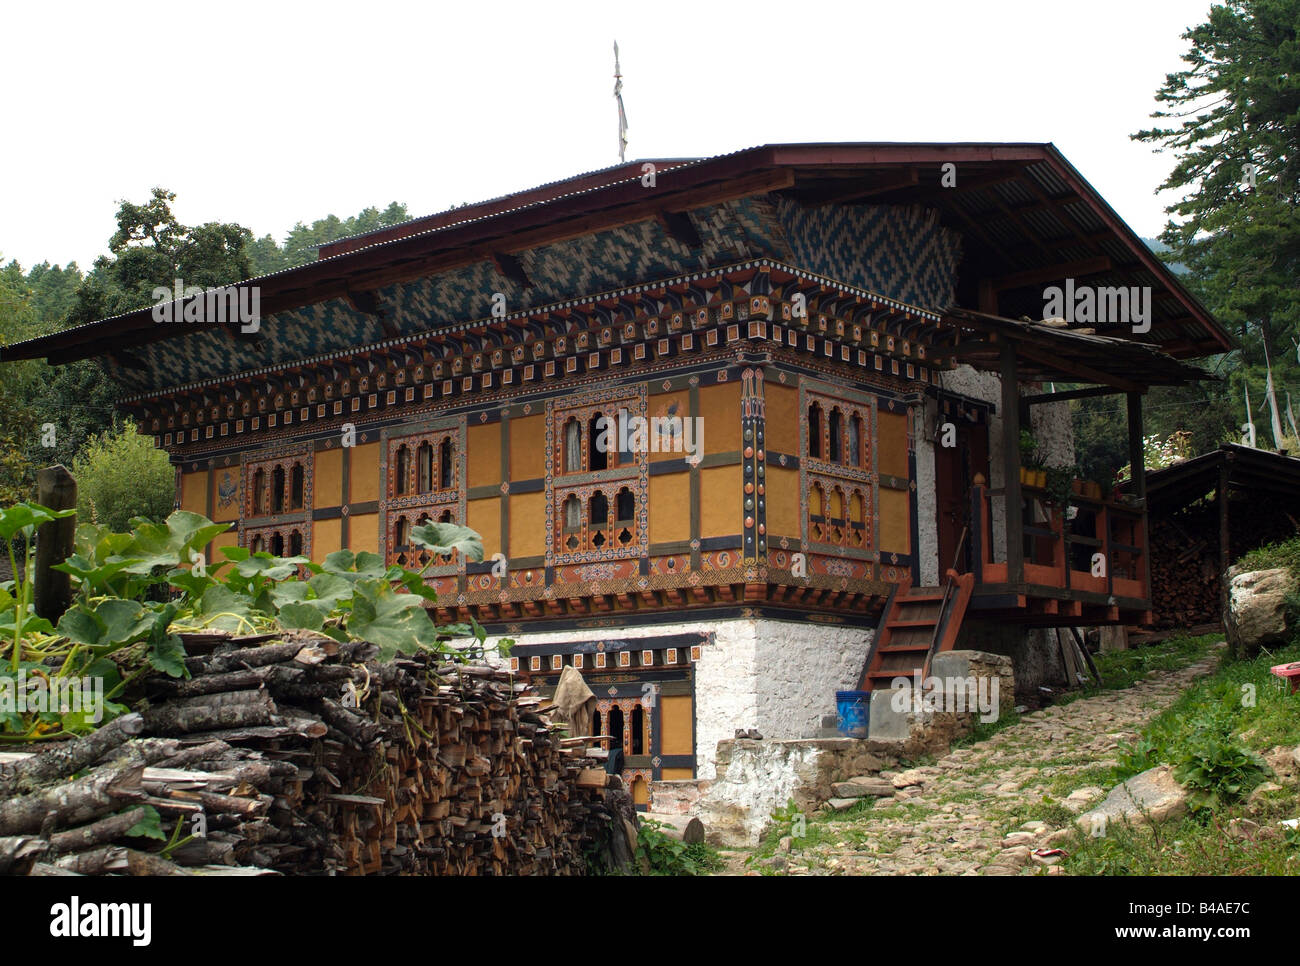 geography / travel, Bhutan, Bumthang Valley, typical house with decoration and stairs, Additional-Rights-Clearance - Stock Image